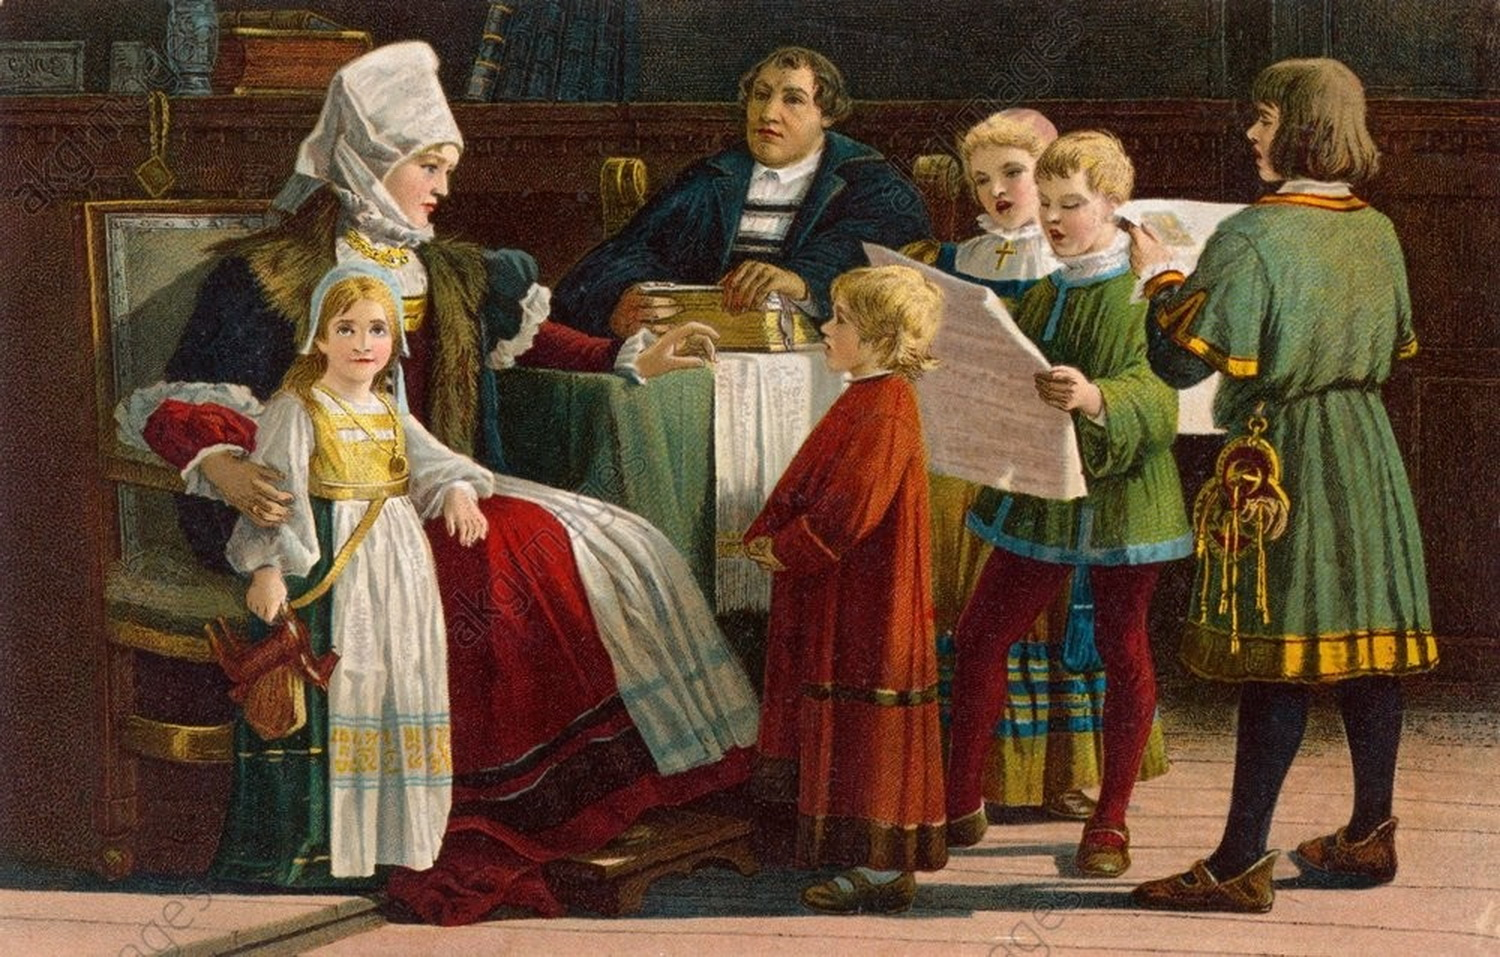 Paul POETZSCH 1858-1936-luther family-1546